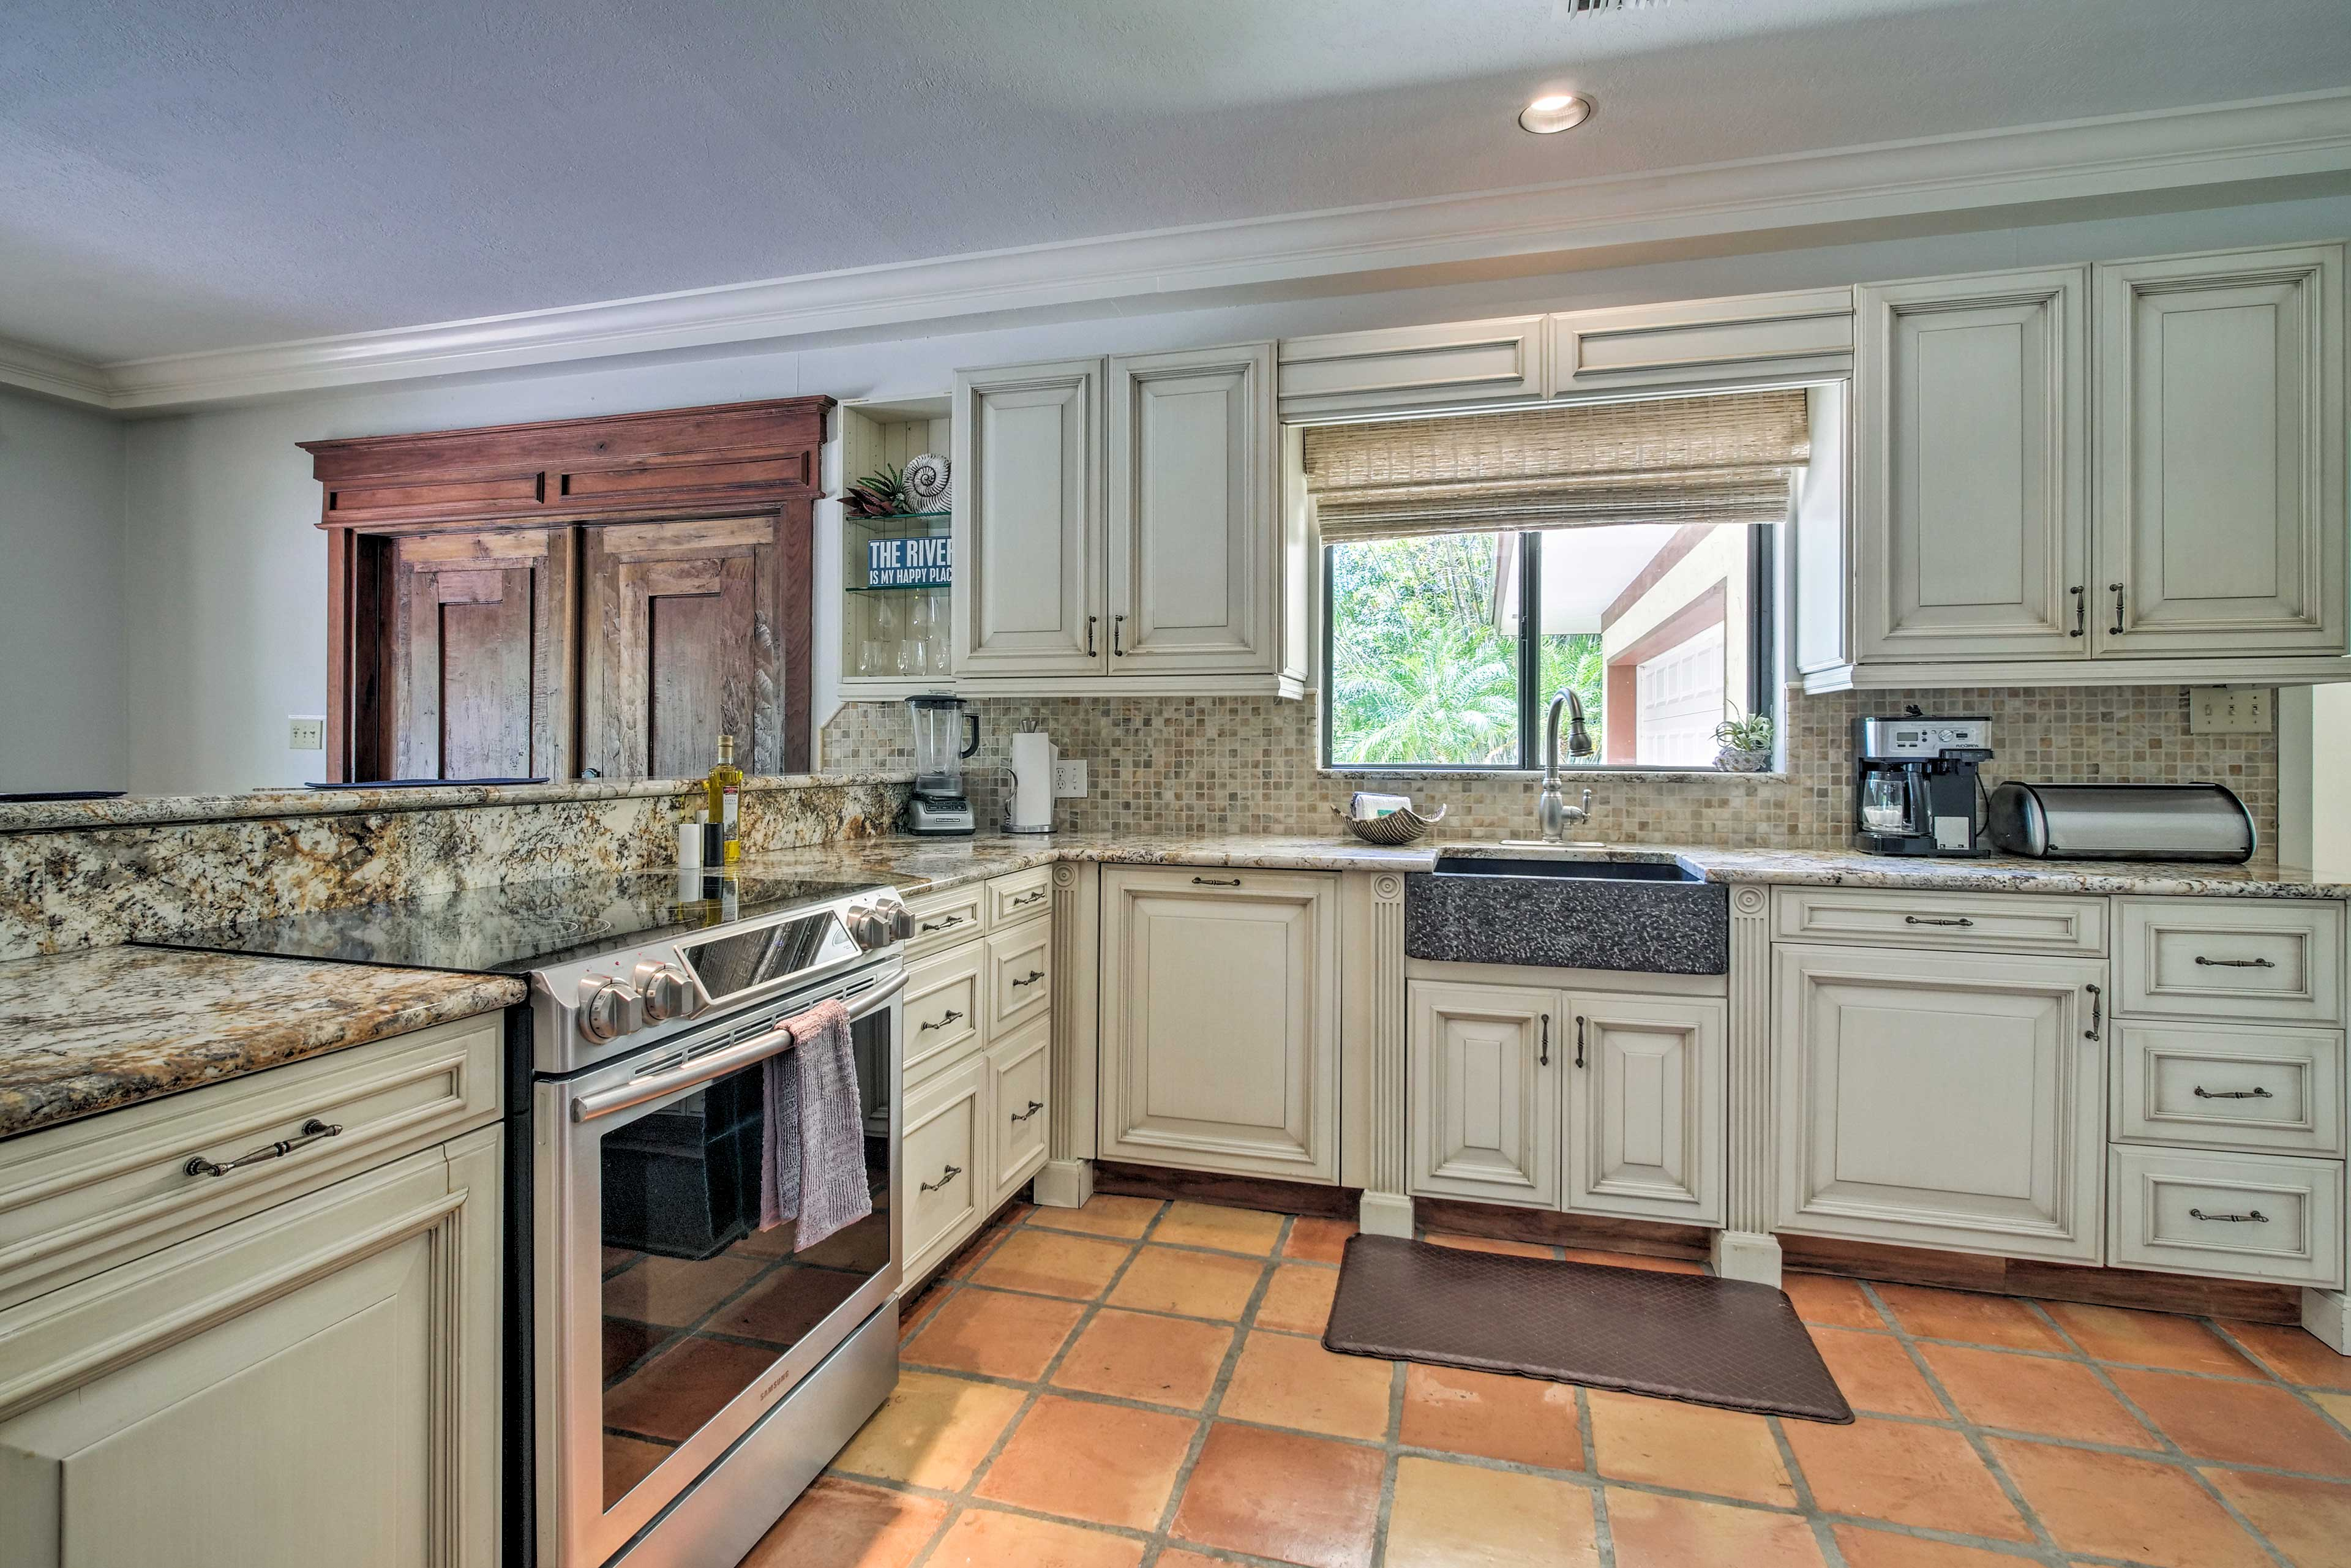 Cook with ease in this fully equipped kitchen w/ stainless steal appliances.